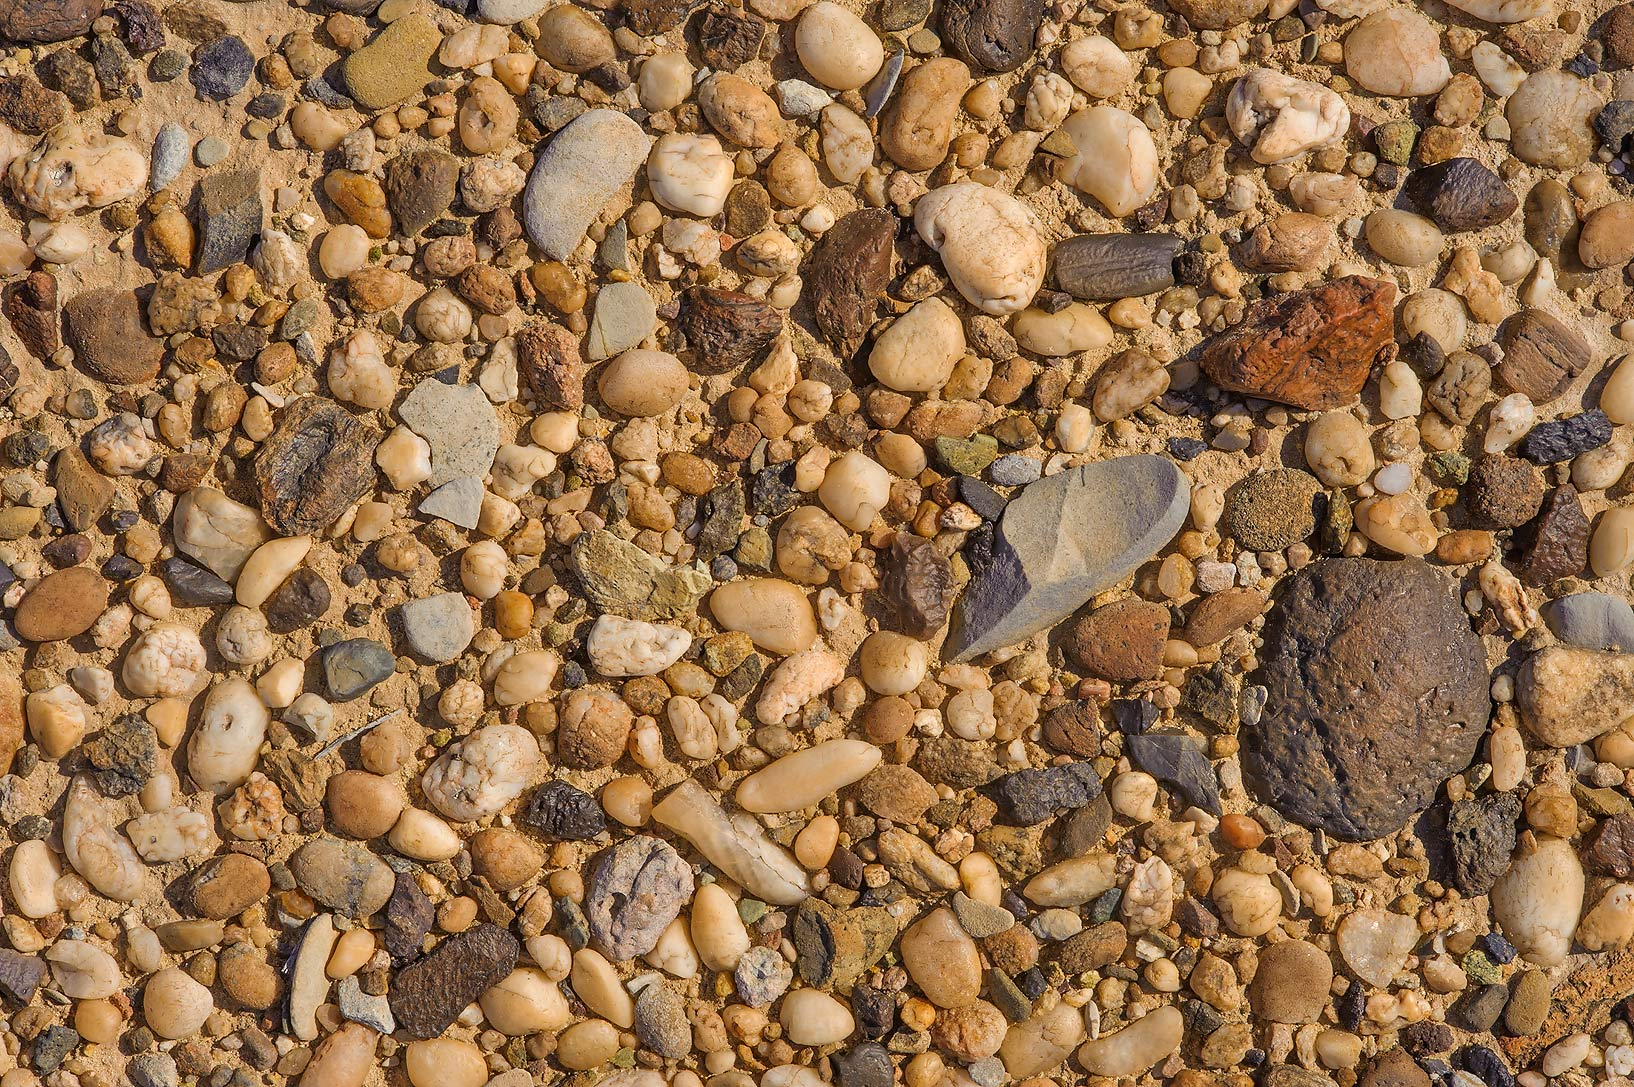 Desert pavement by pebbles near Harrarah in southern Qatar